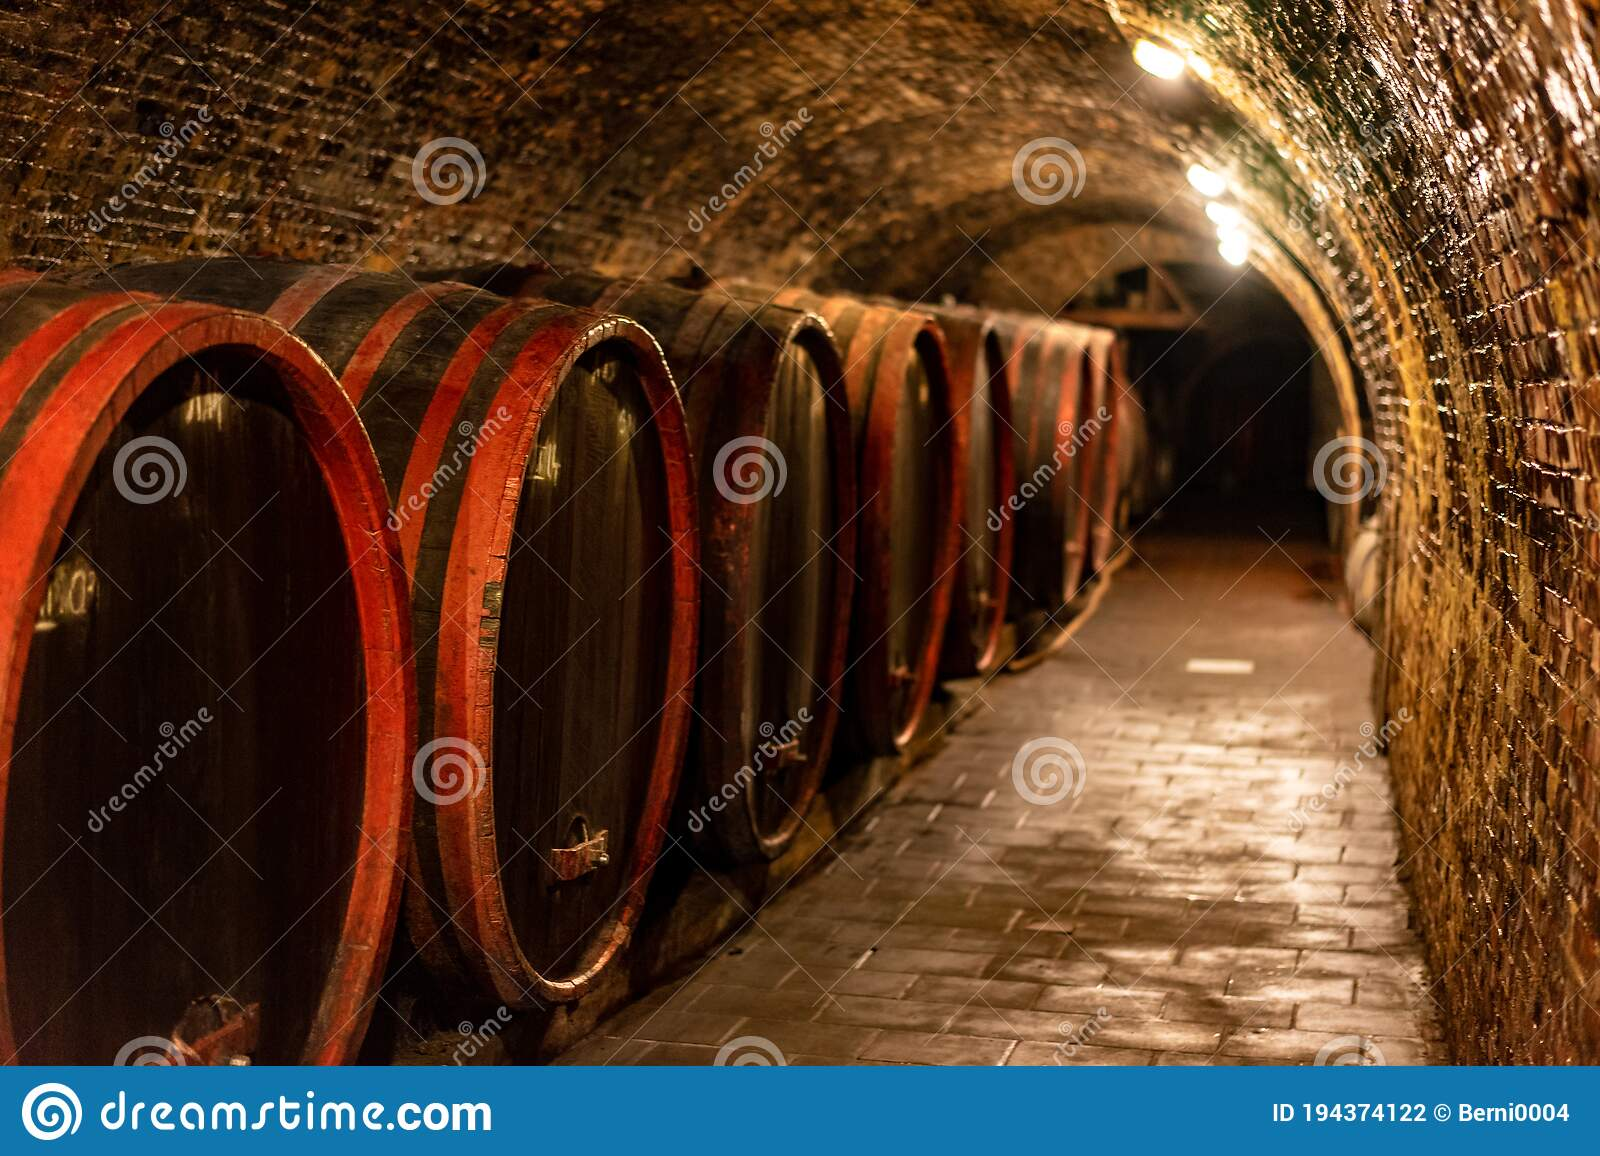 Wooden Old Barrels In The Rustic Wine Cellar With Brick Walls In Villany Hungary Stock Photo Image Of Tasting Rustic 194374122